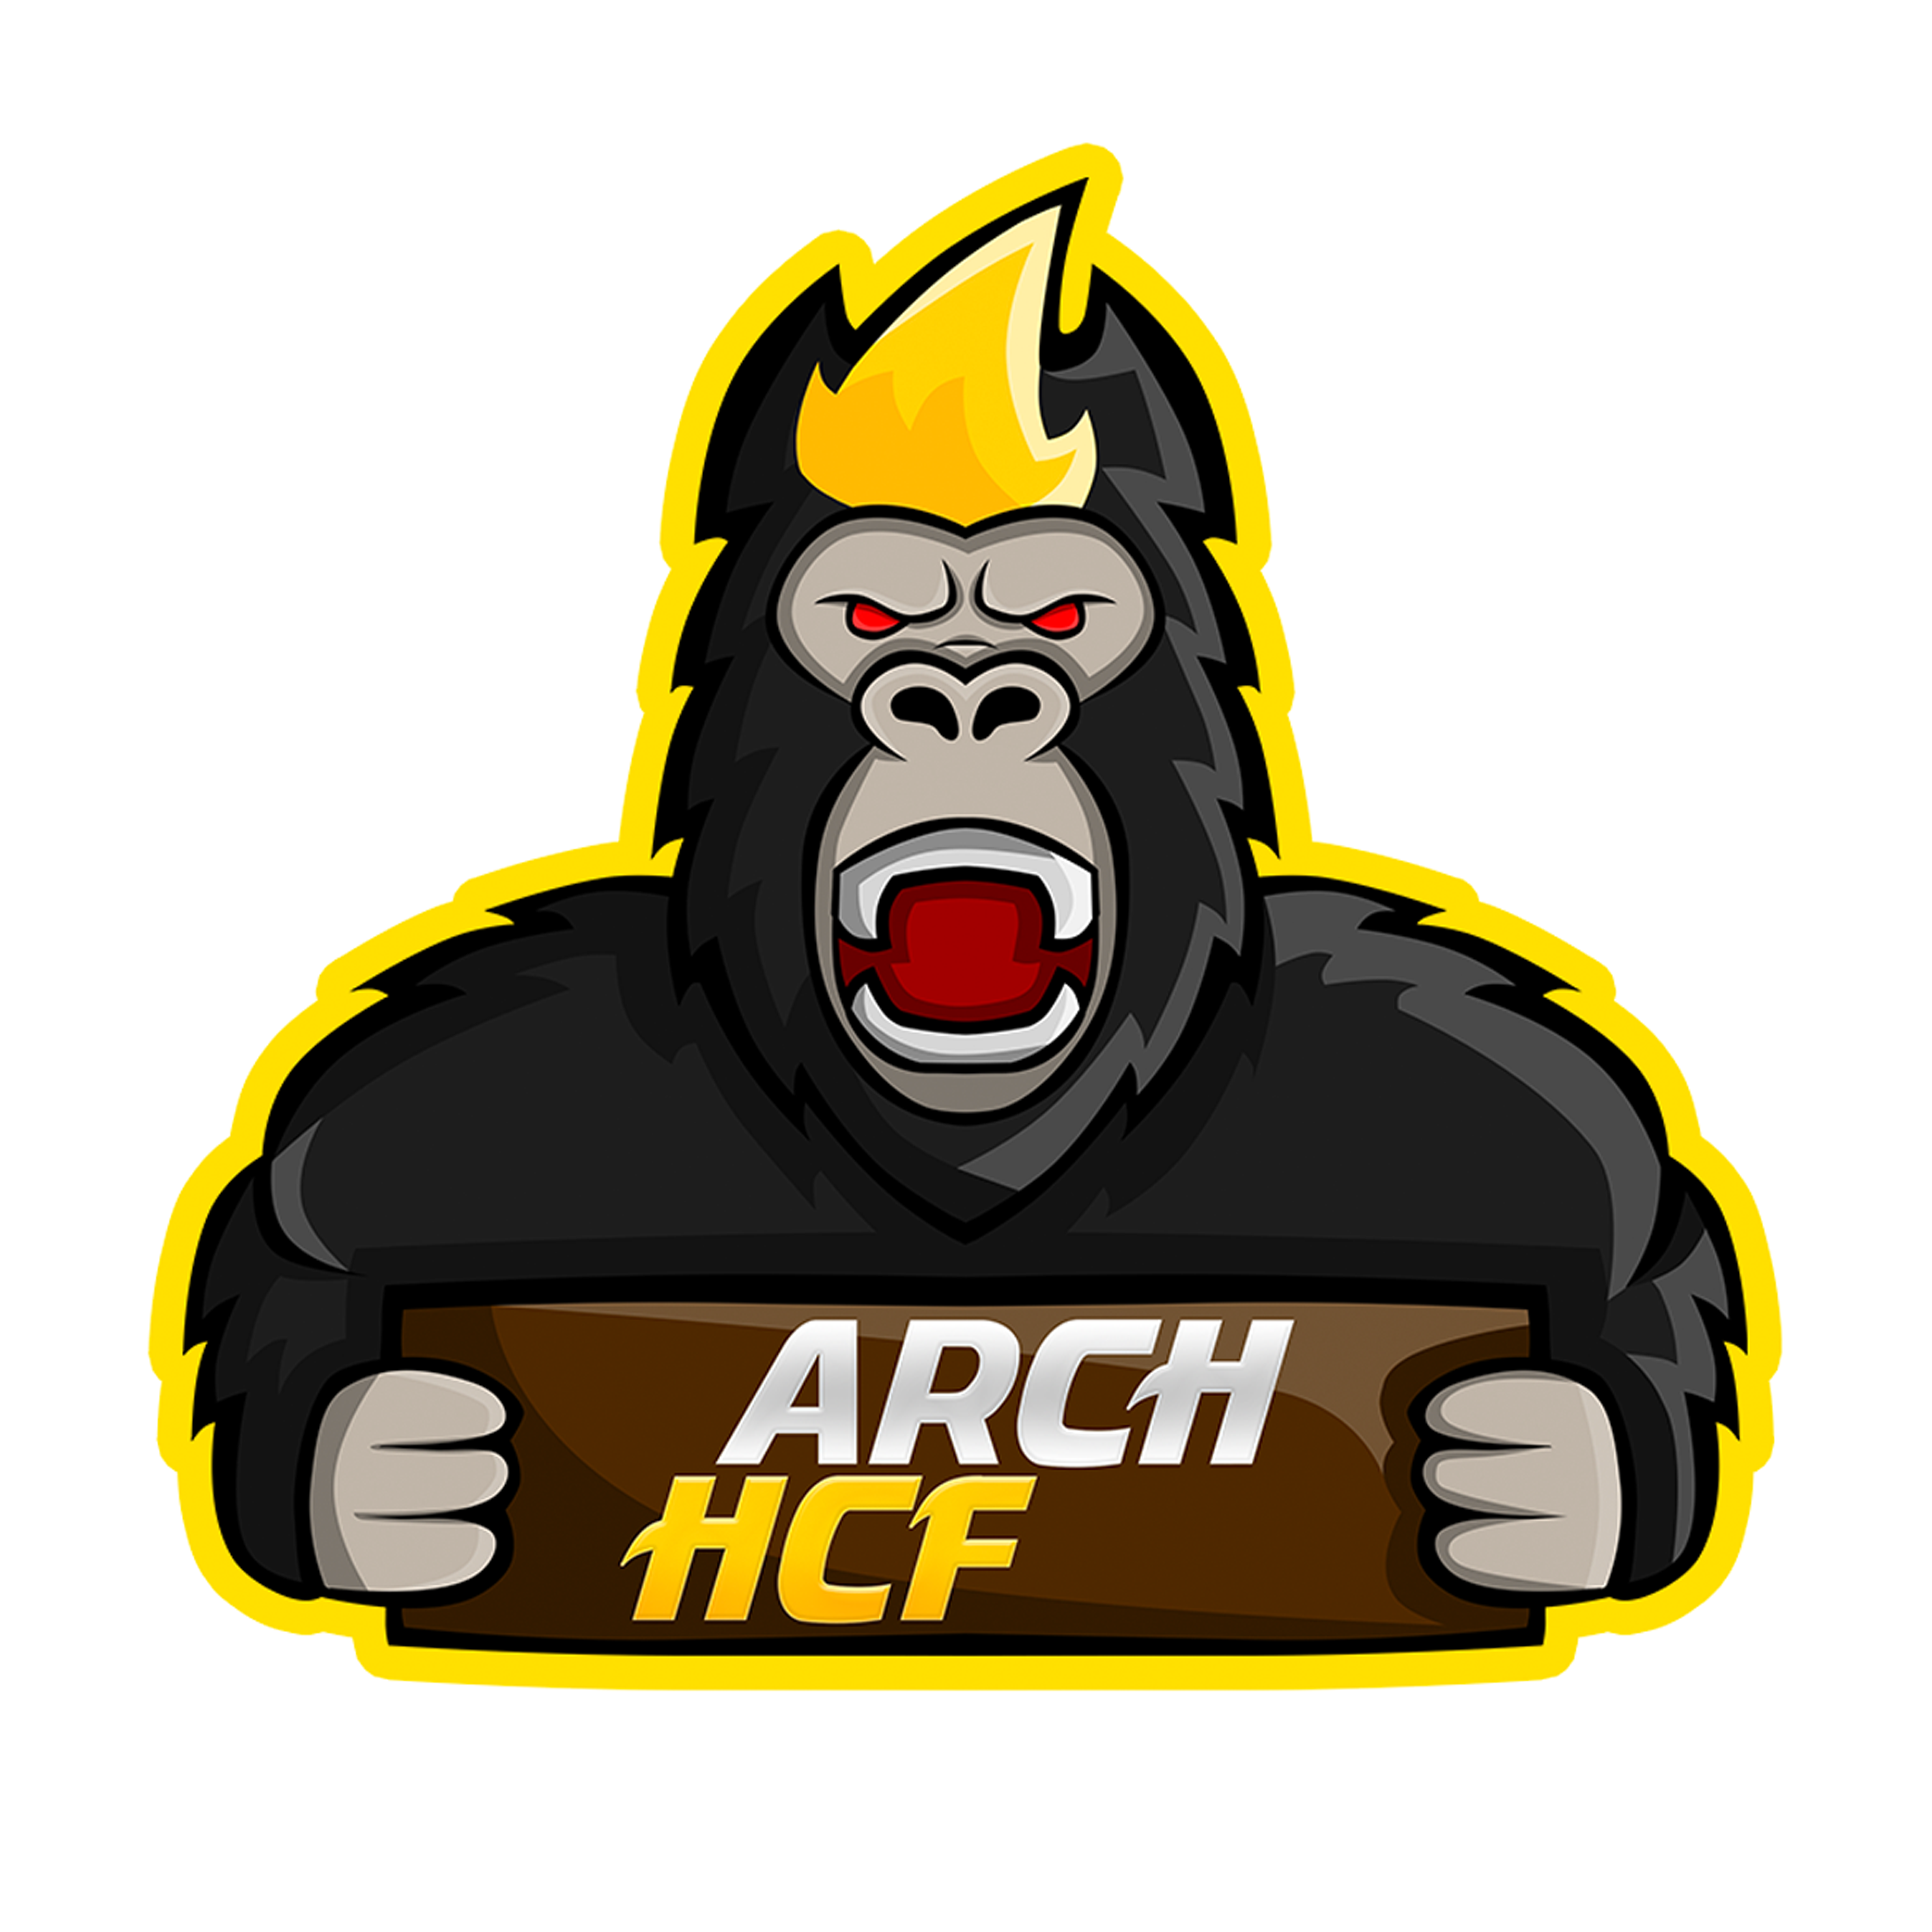 Arch HCF Yellow Outline